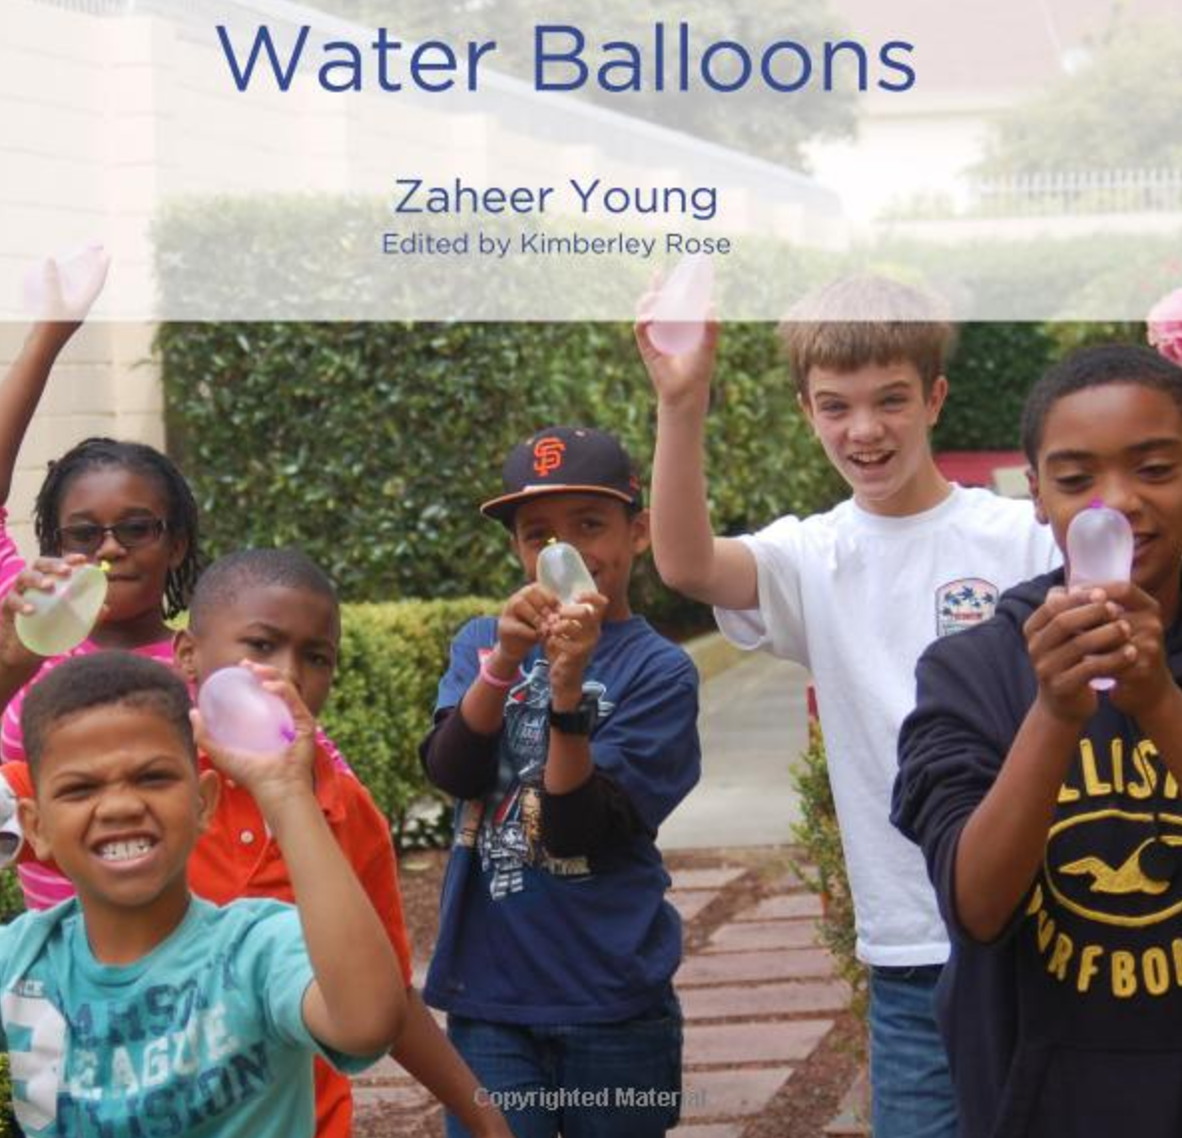 Water Balloons   Zaheer Young introduces the young reader to the art of water balloons. Have fun learning to read, while learning how to play safely and respectfully with water balloons.   Buy this book.